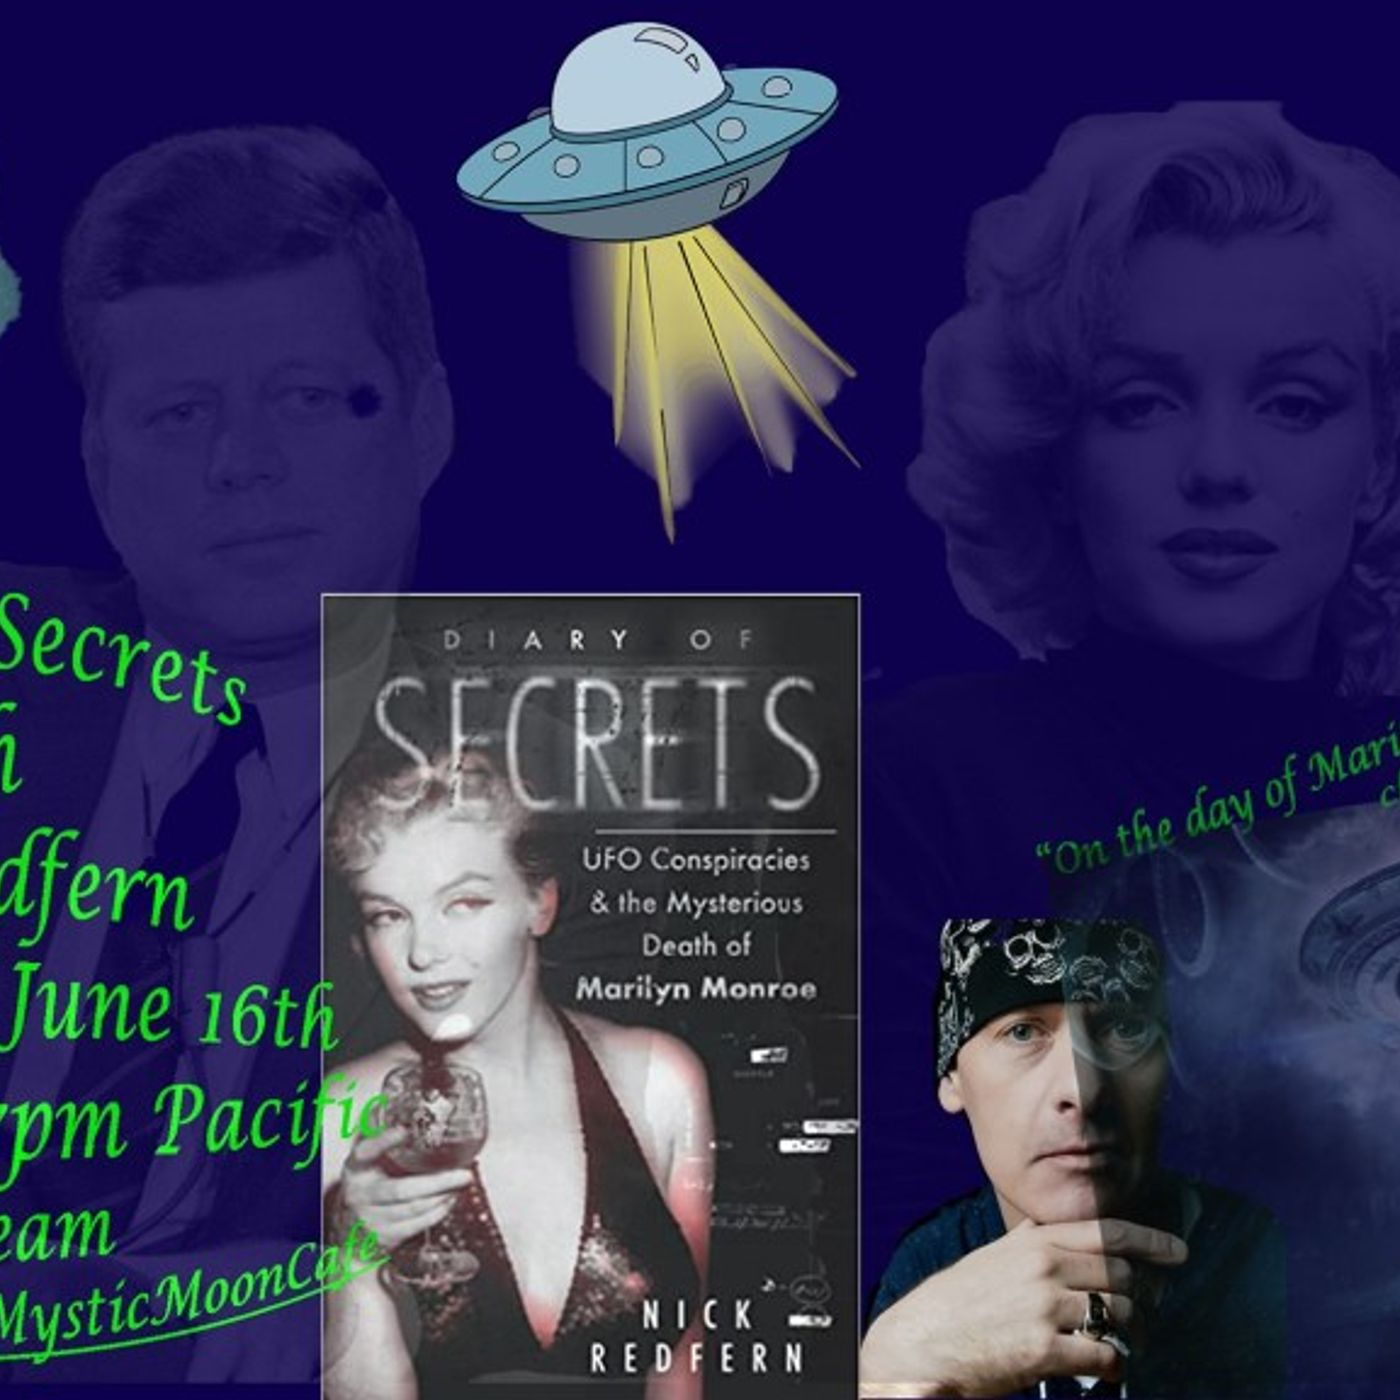 Diary of Secrets: UFO Conspiracies And The Death Of Marilyn Monroe